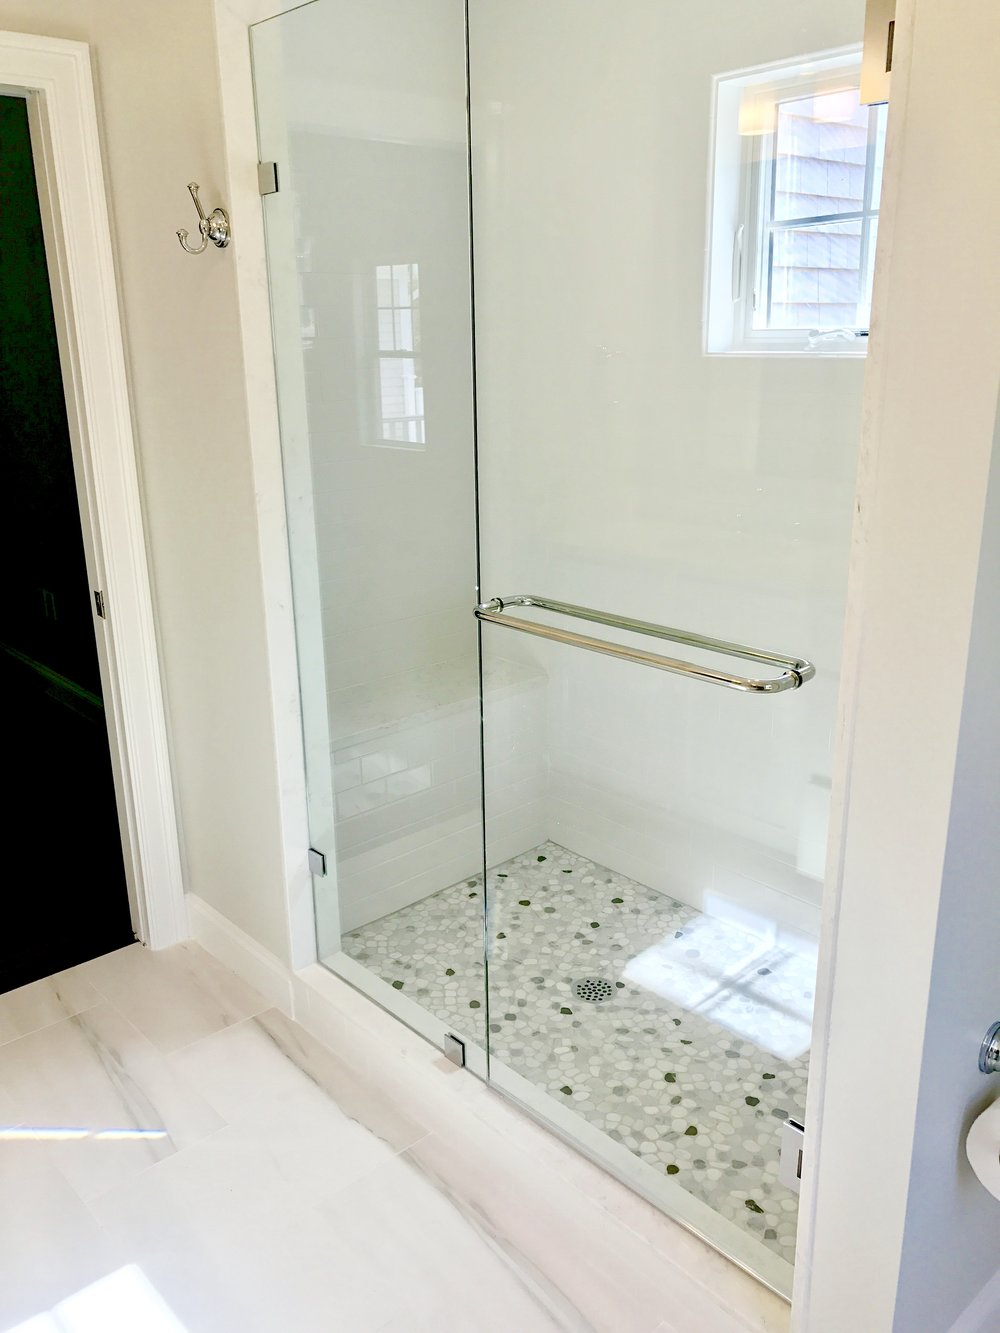 34 cran 8-2-18 pic master shower.jpg